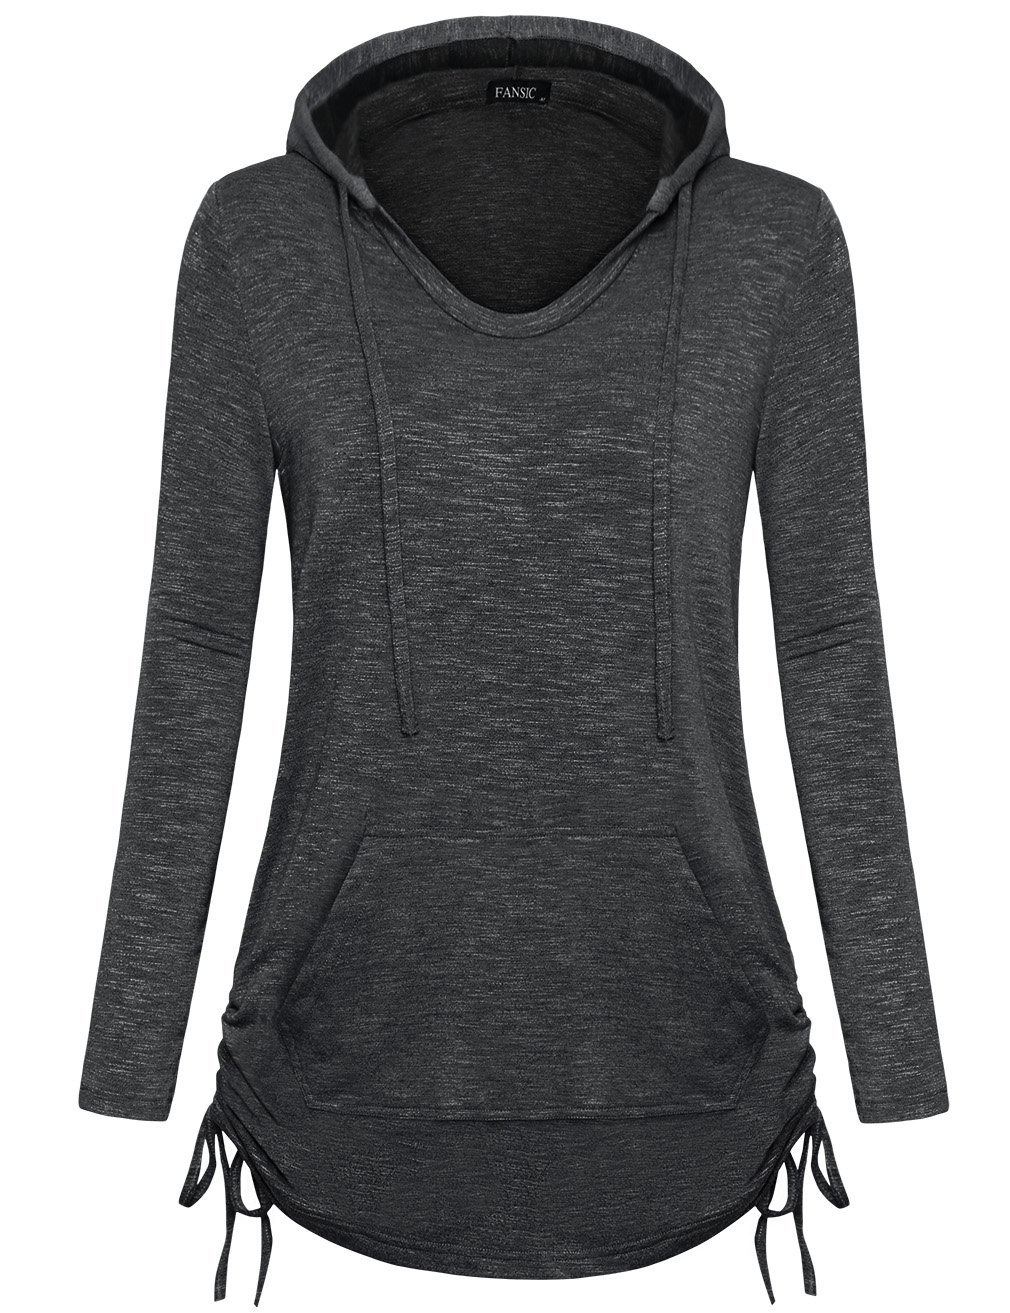 FANSIC Women's Burnout Color Lightweight Pullover Sweatshirt Hoodie with Pocket